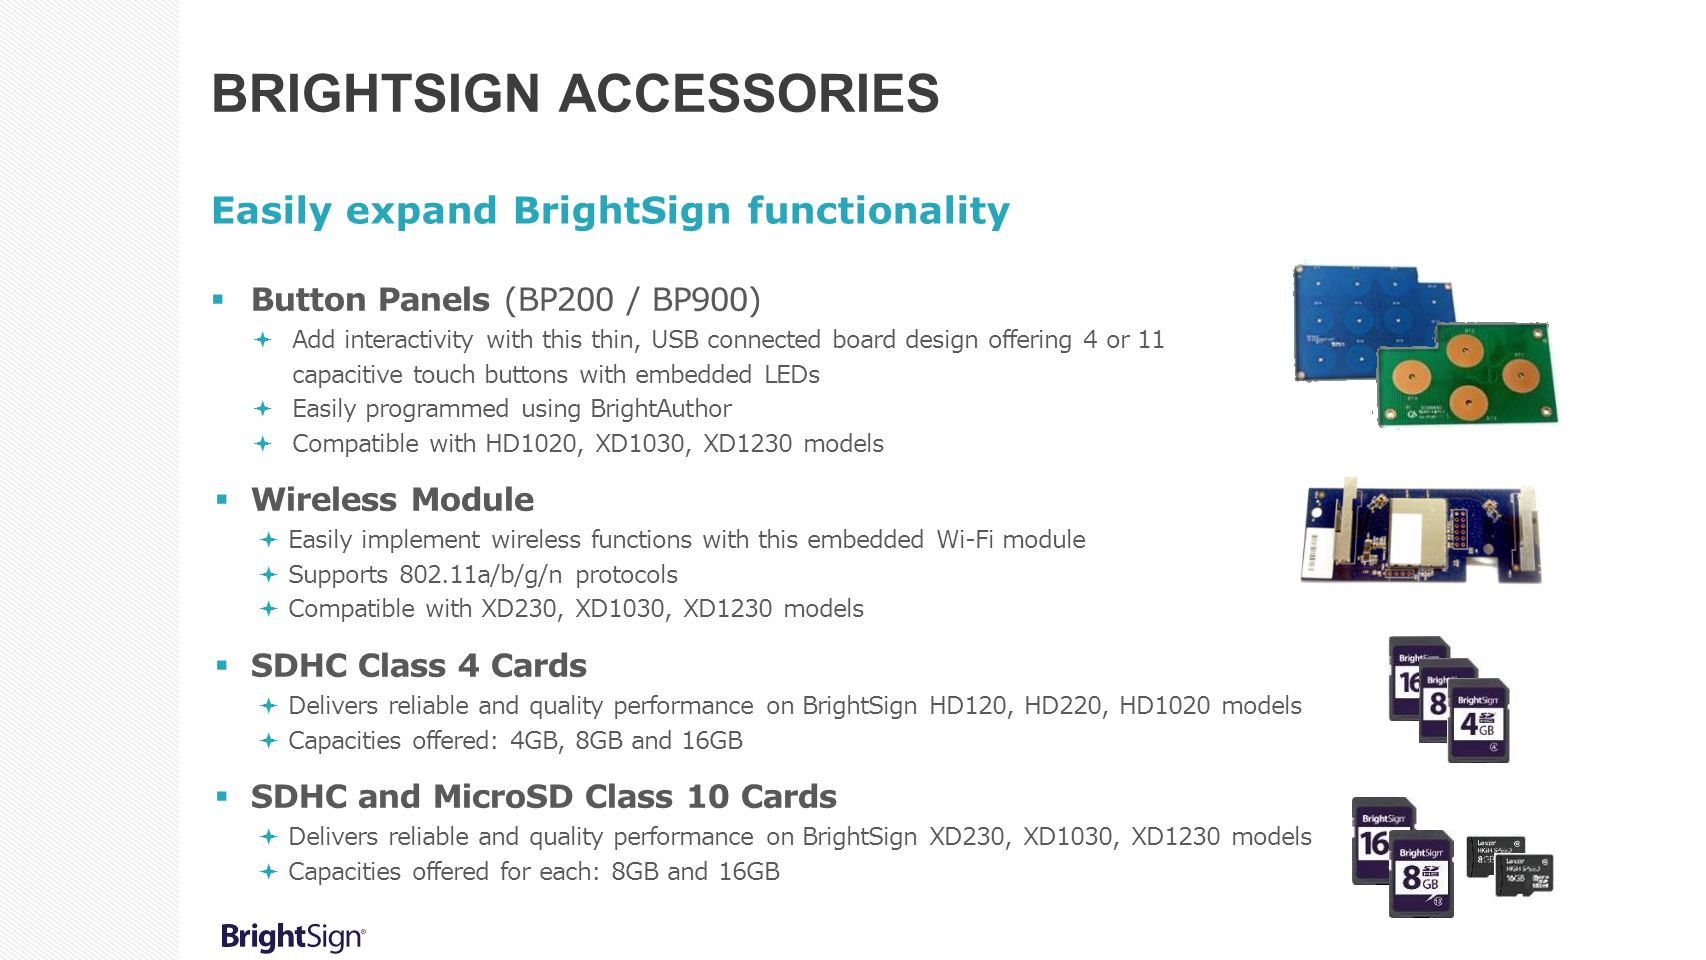 BRIGHTSIGN ACCESSORIES Easily expand BrightSign functionality  Button Panels (BP200 / BP900)  Add interactivity with this thin, USB connected board